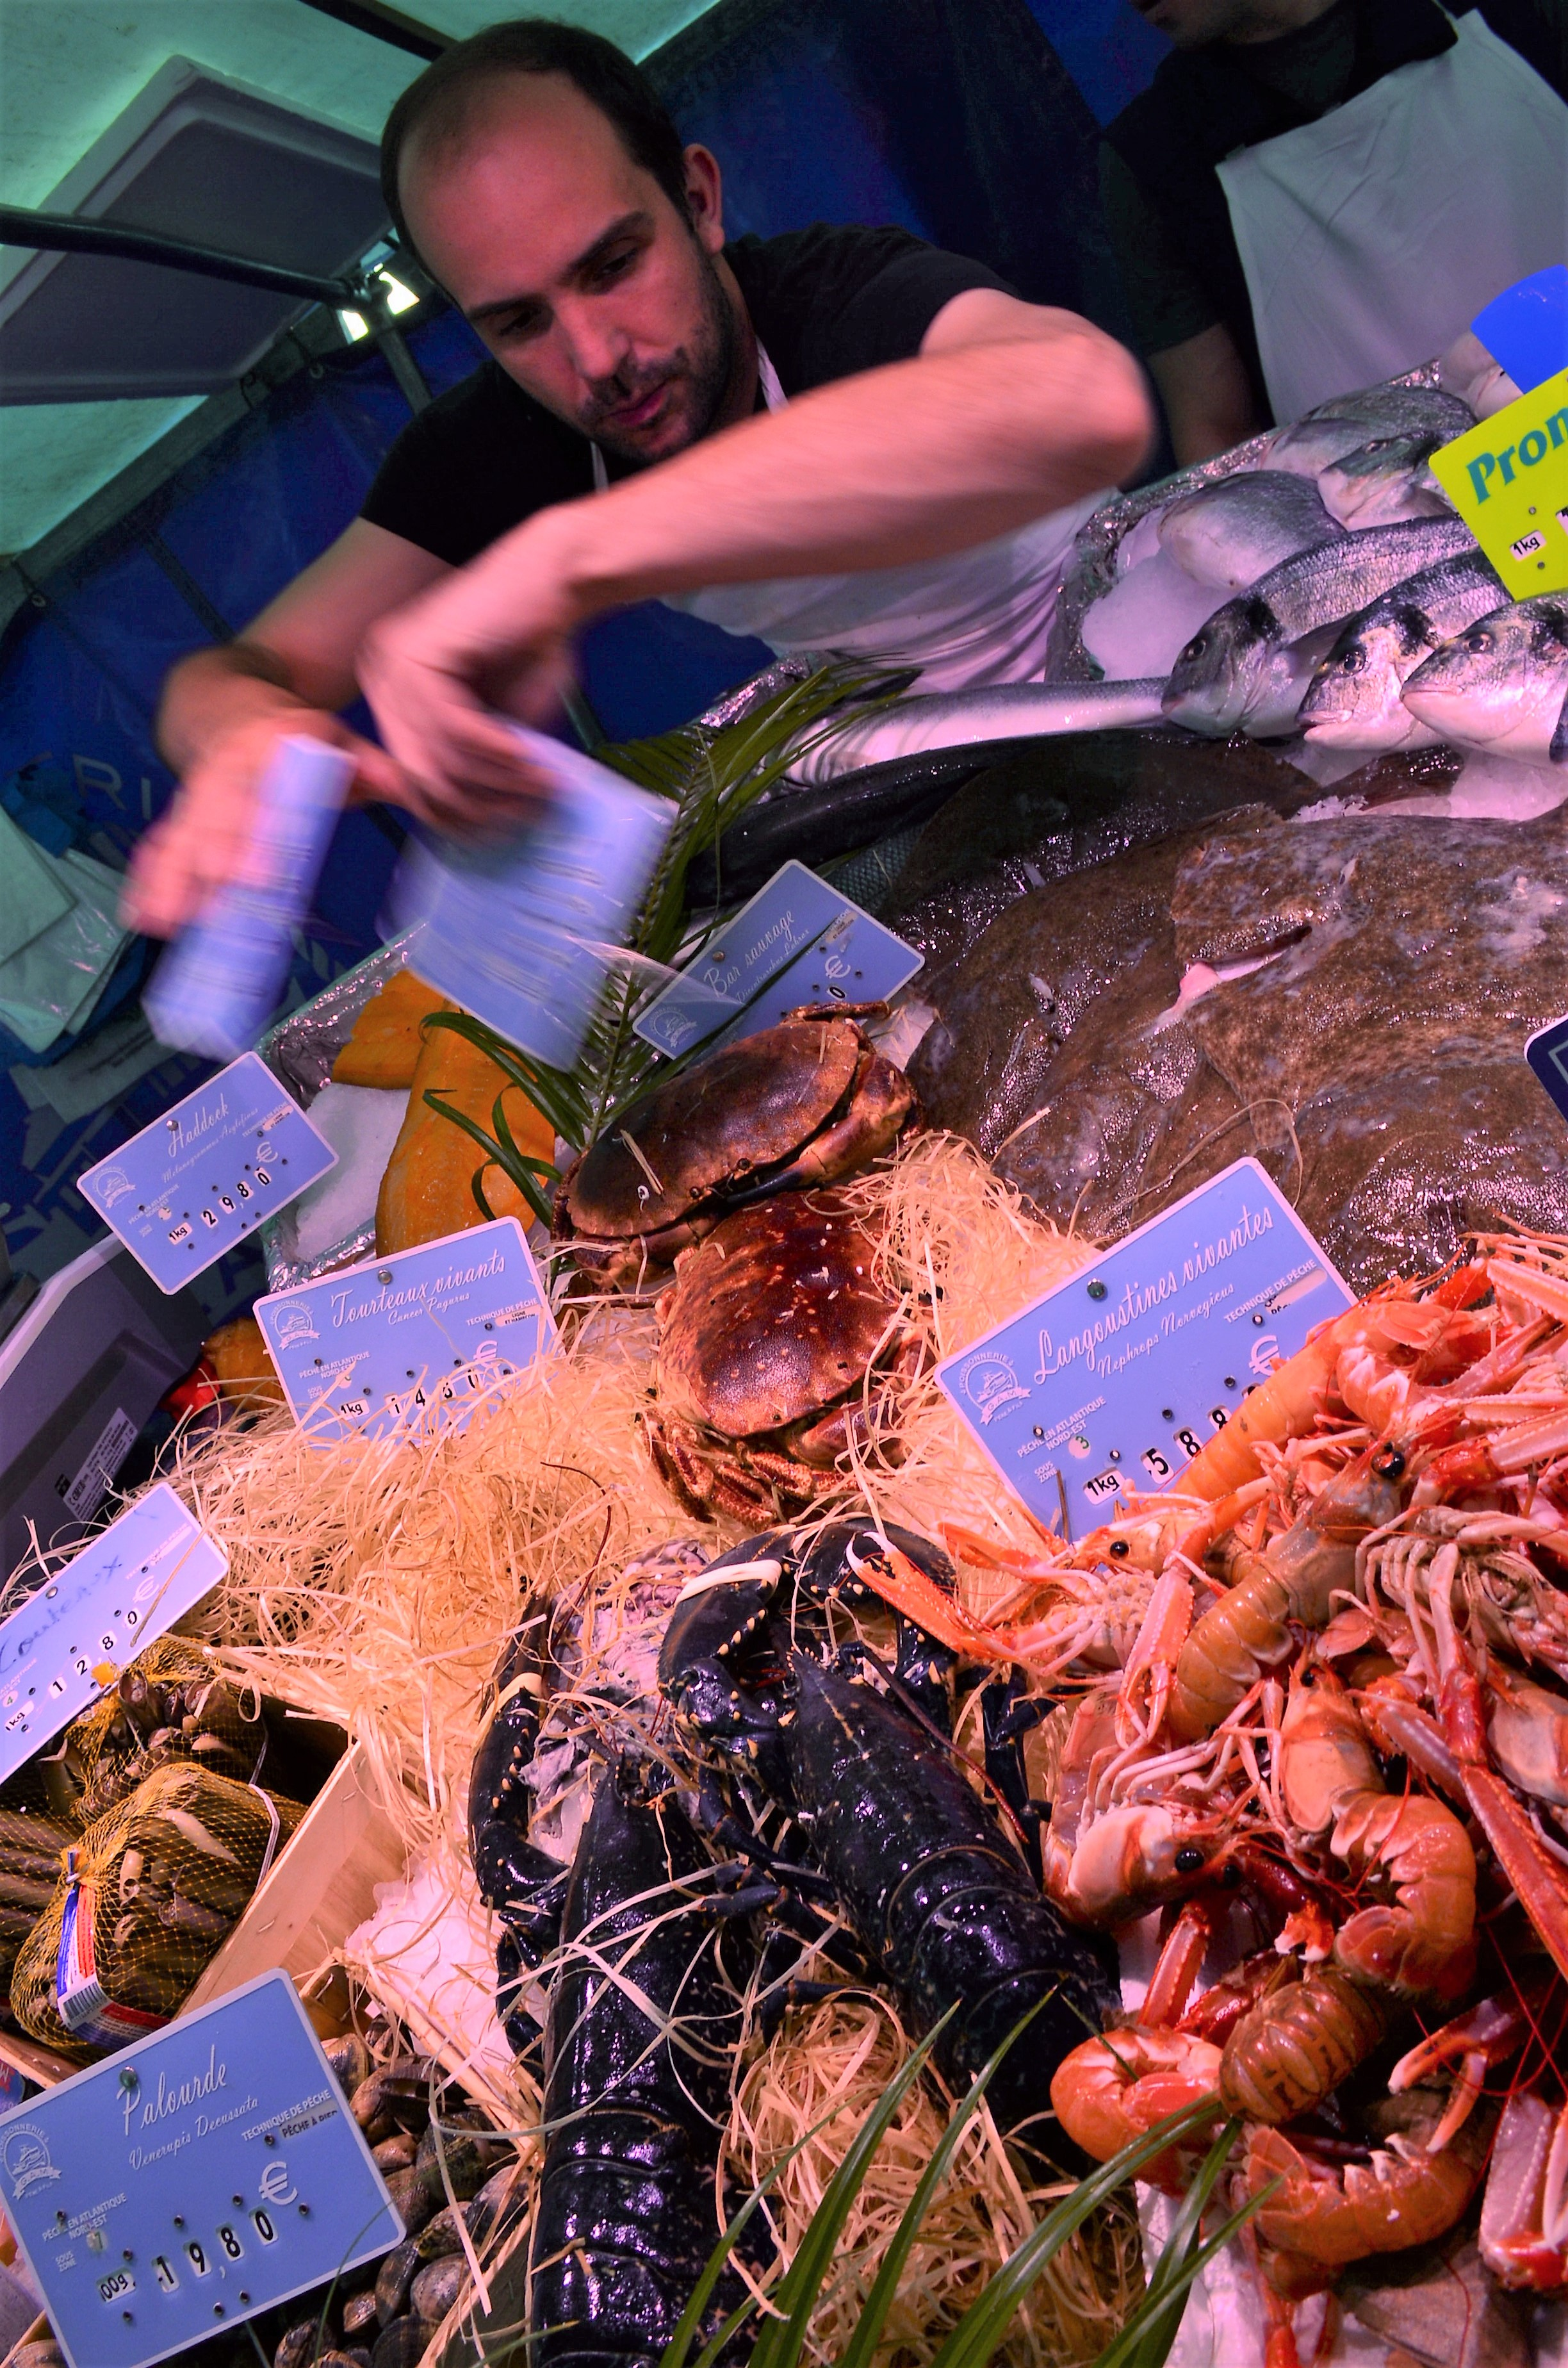 The best fish stall in the market!